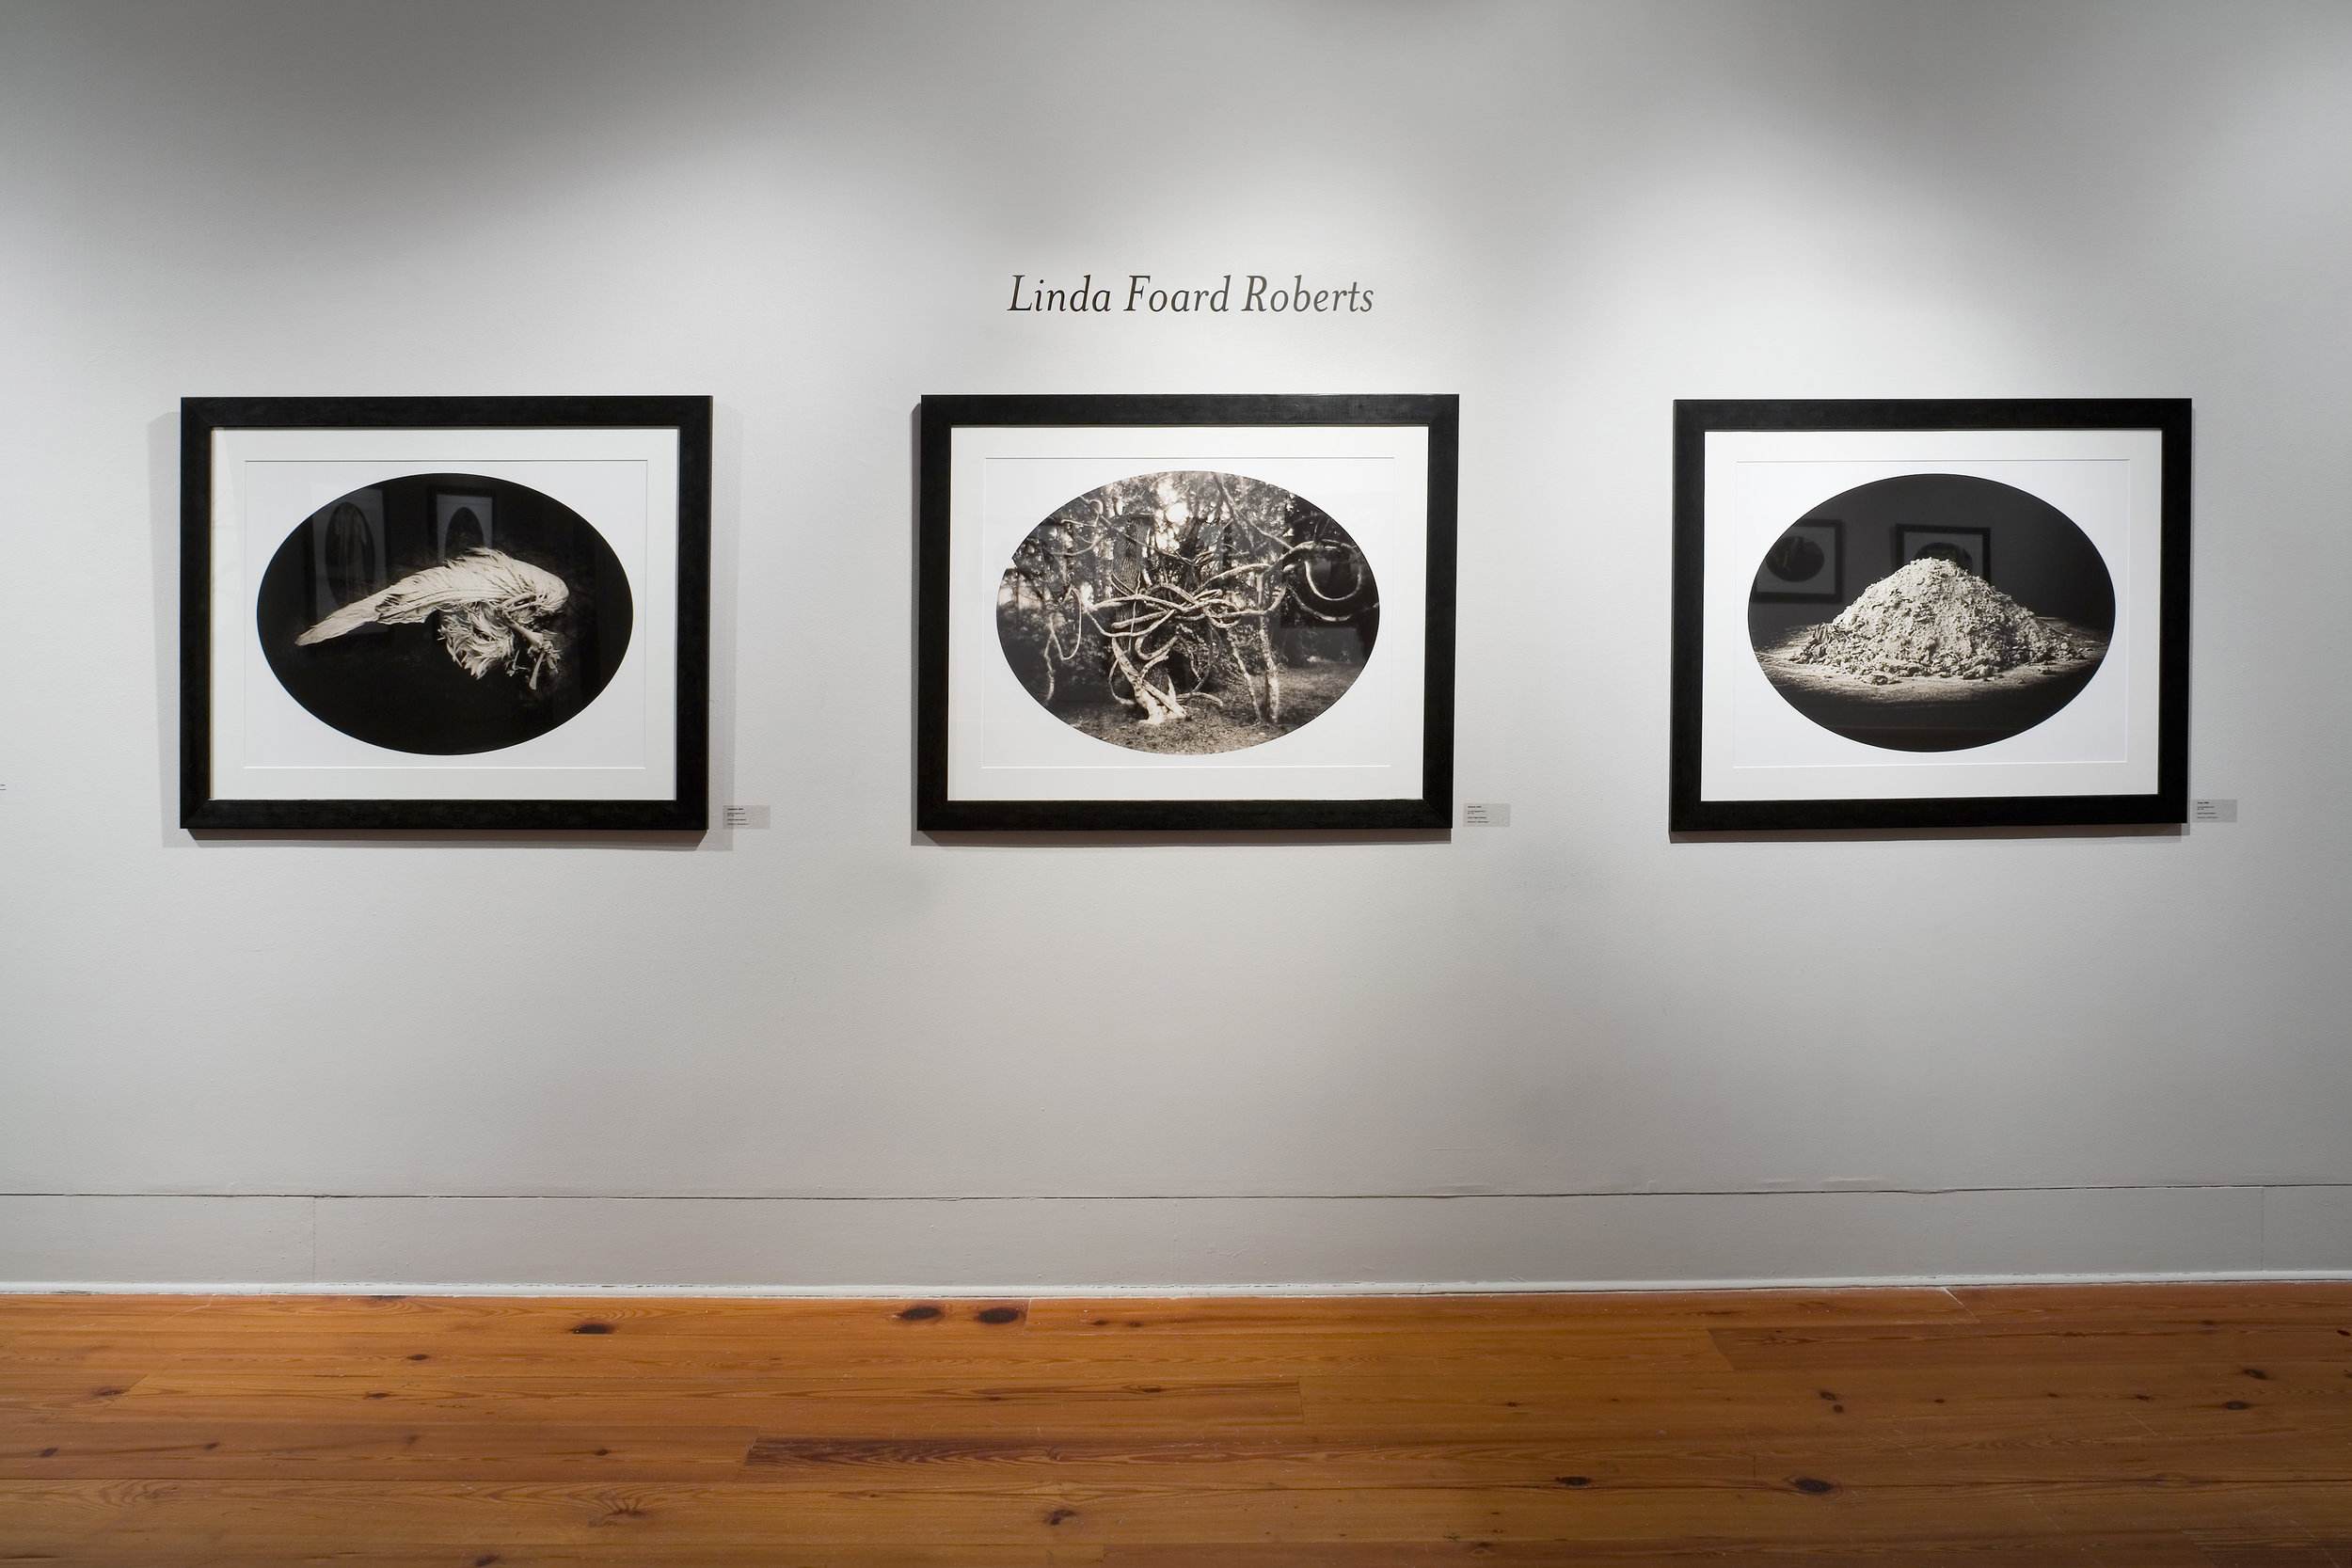 THE LIGHT FACTORY PHOTOGRAPHIC ARTS CENTER  ESTEEMING THE PEARLS EXHIBITION WITH LUIS GONZALEZ PALMA